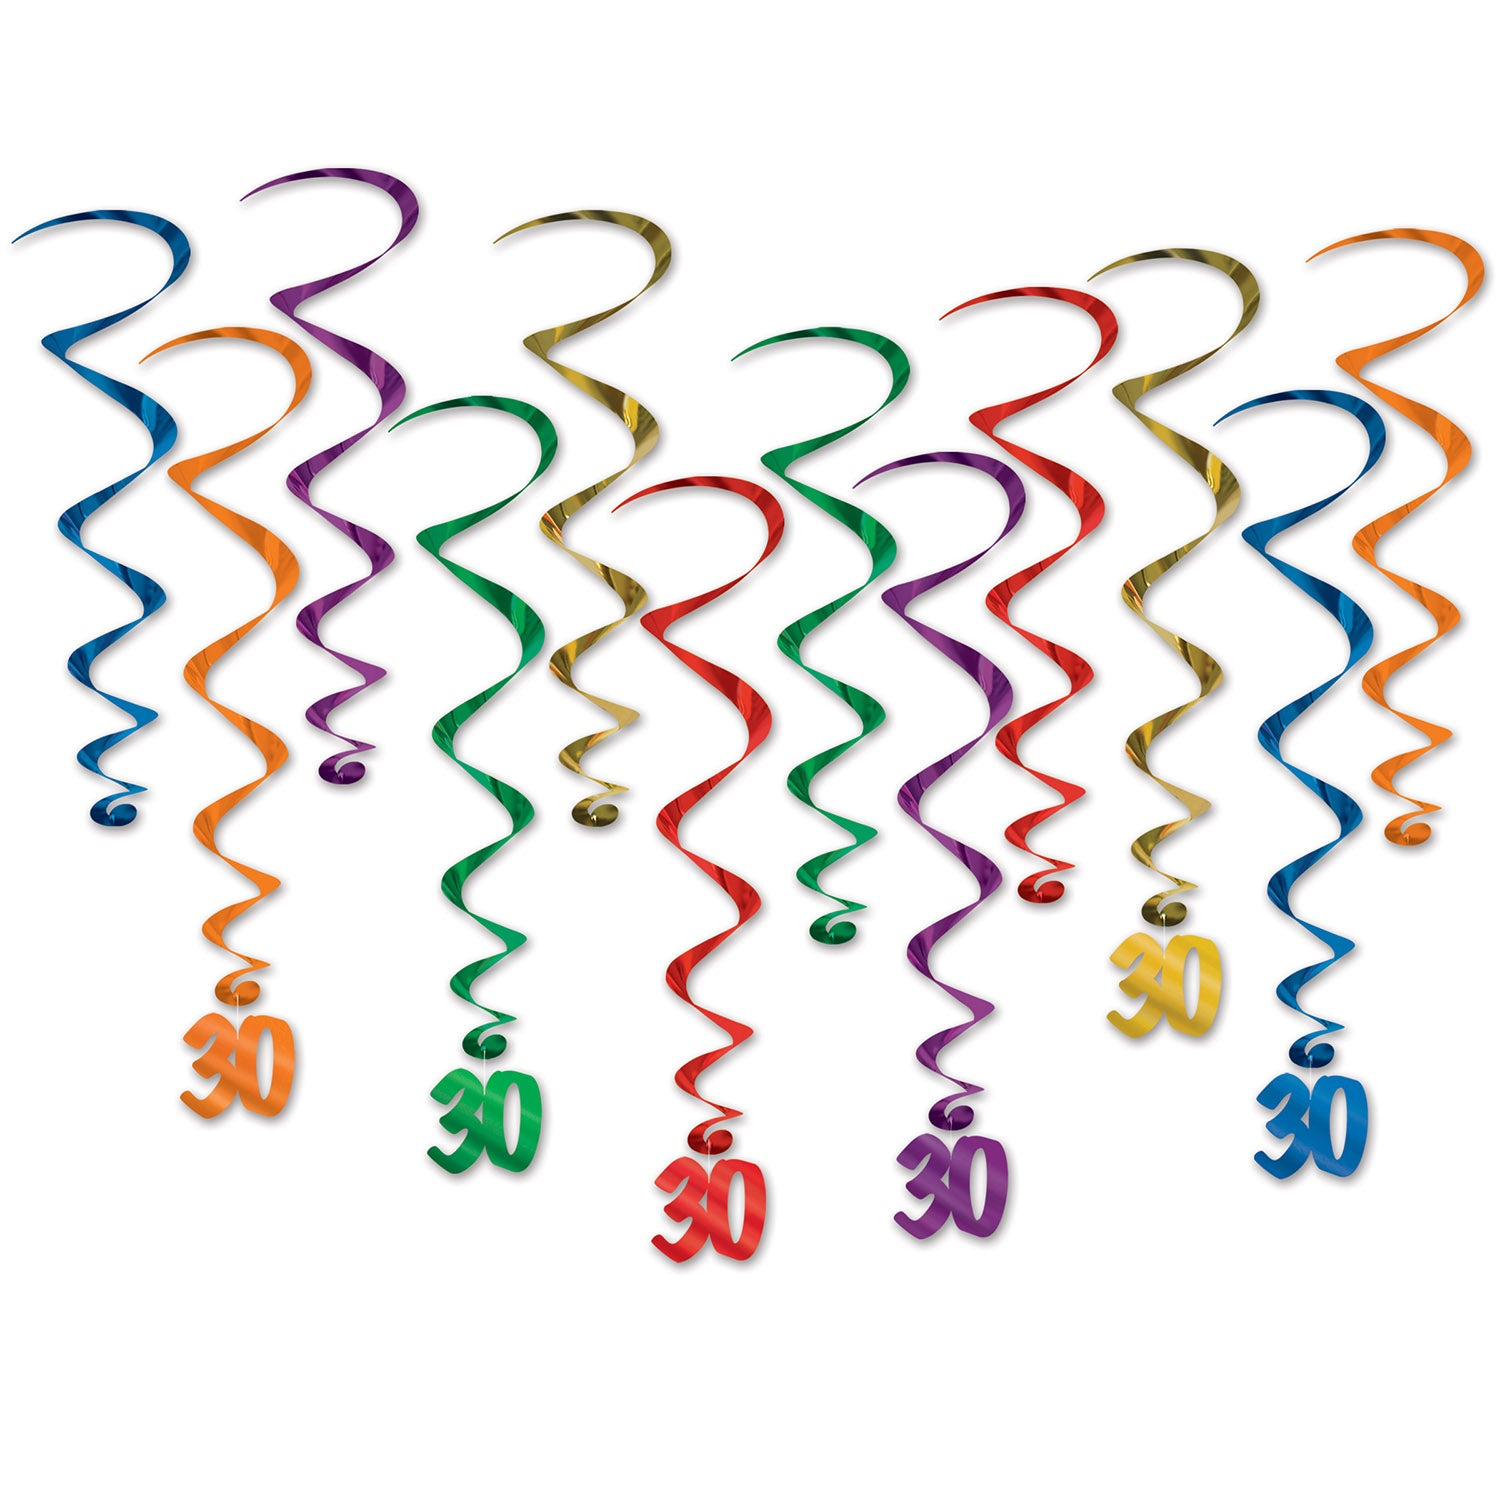 30 Whirls (12/Pkg) by Beistle - 30th Birthday Party Decorations